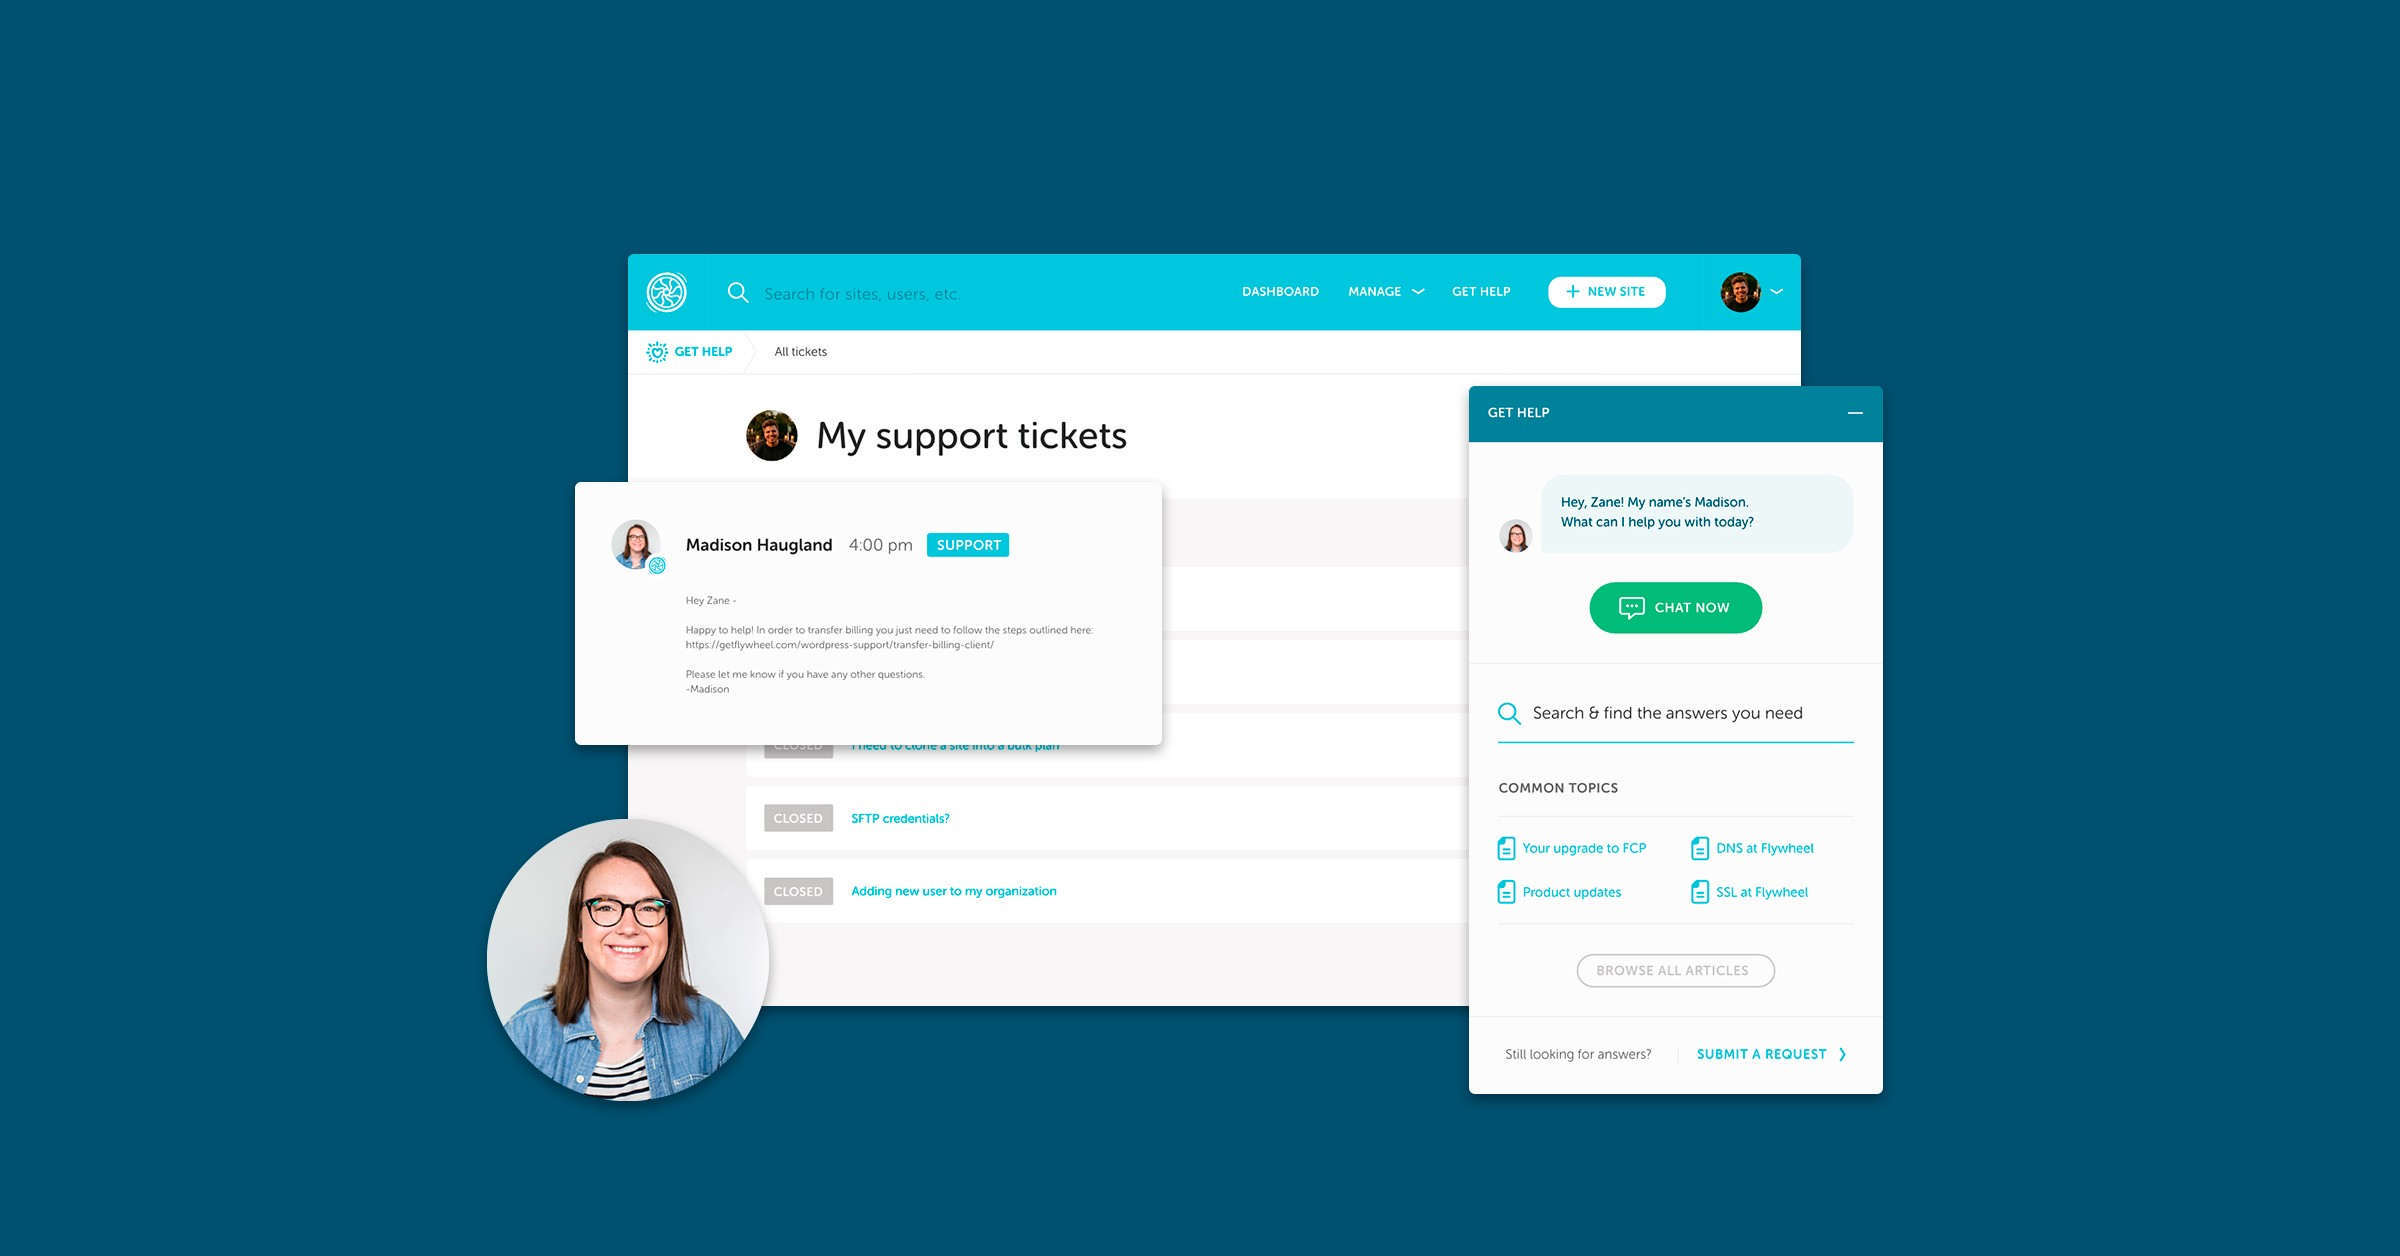 Introducing 24/7 support + a brand new in-app experience